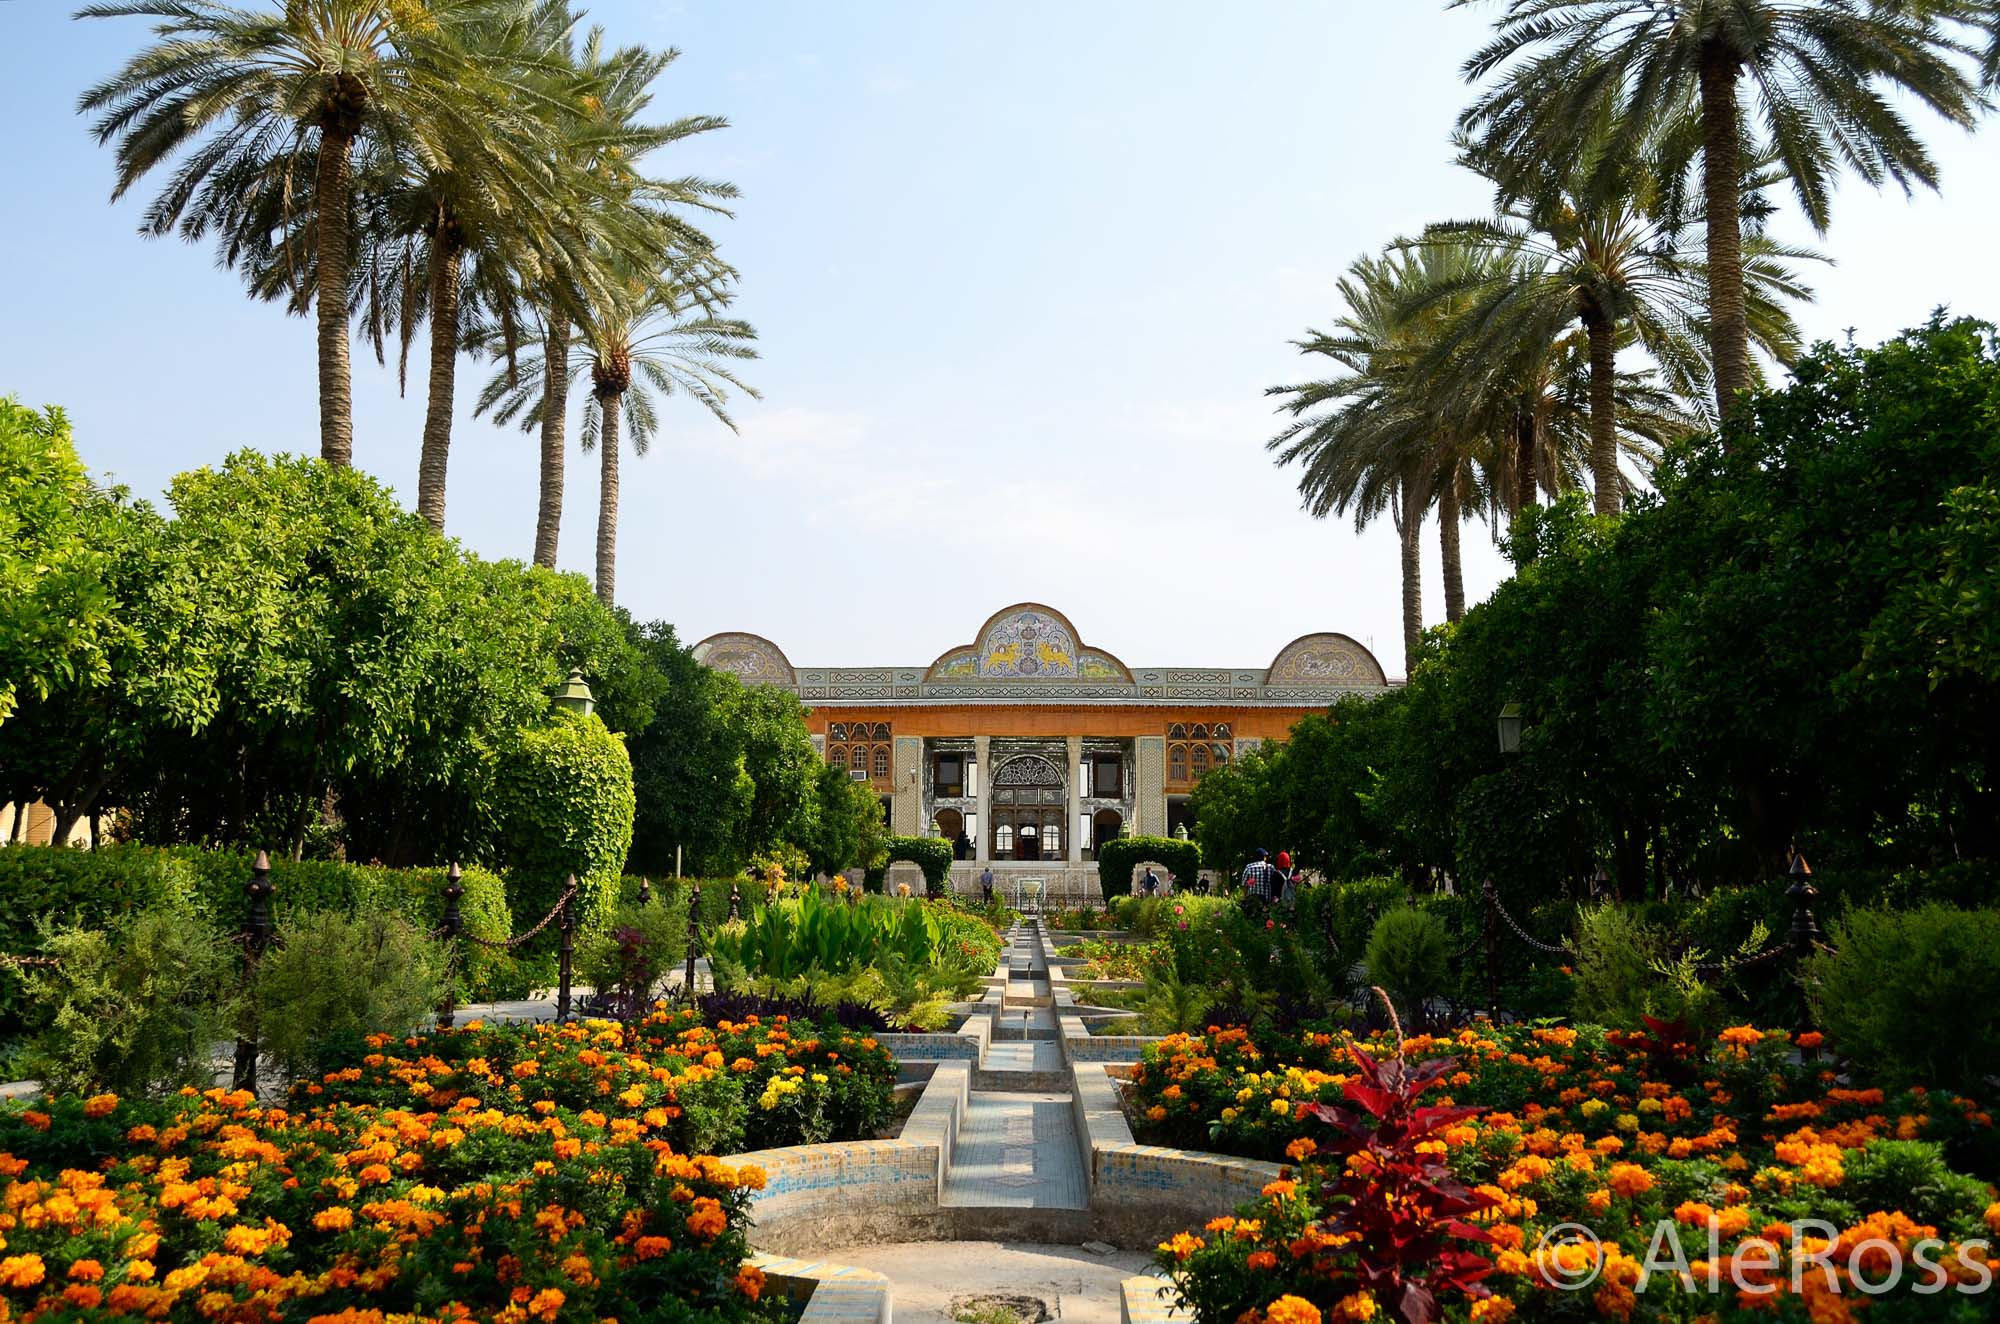 Iran Museums and Palaces